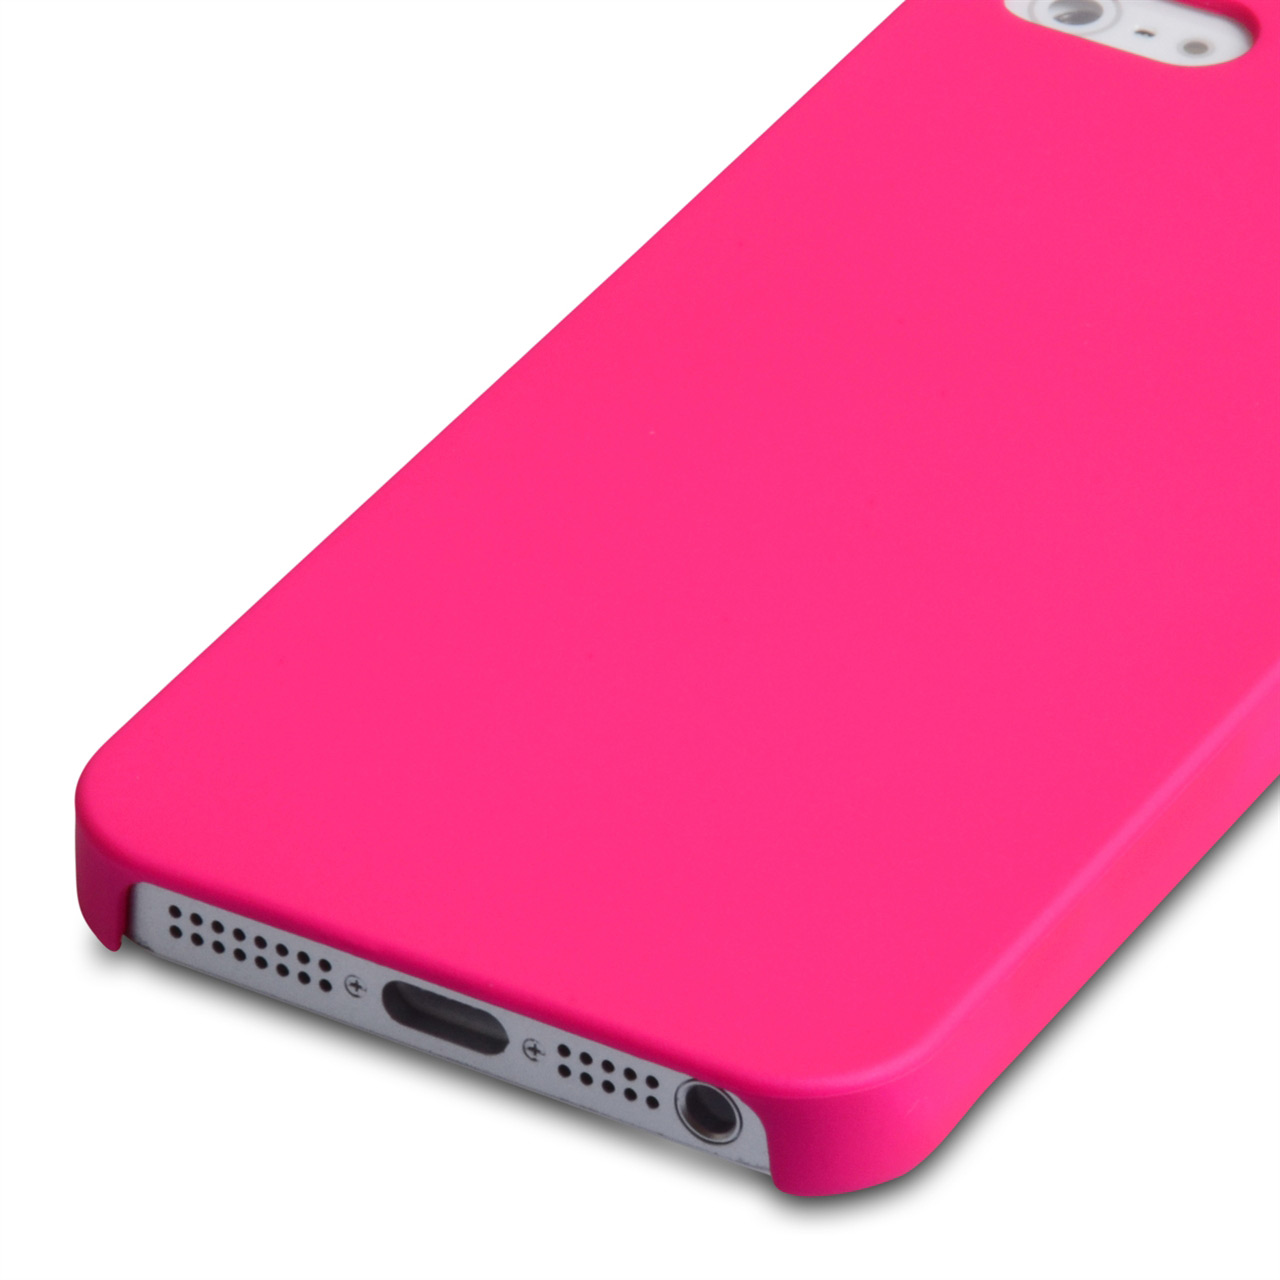 YouSave Accessories iPhone 5 / 5S Hard Hybrid Case - Hot Pink